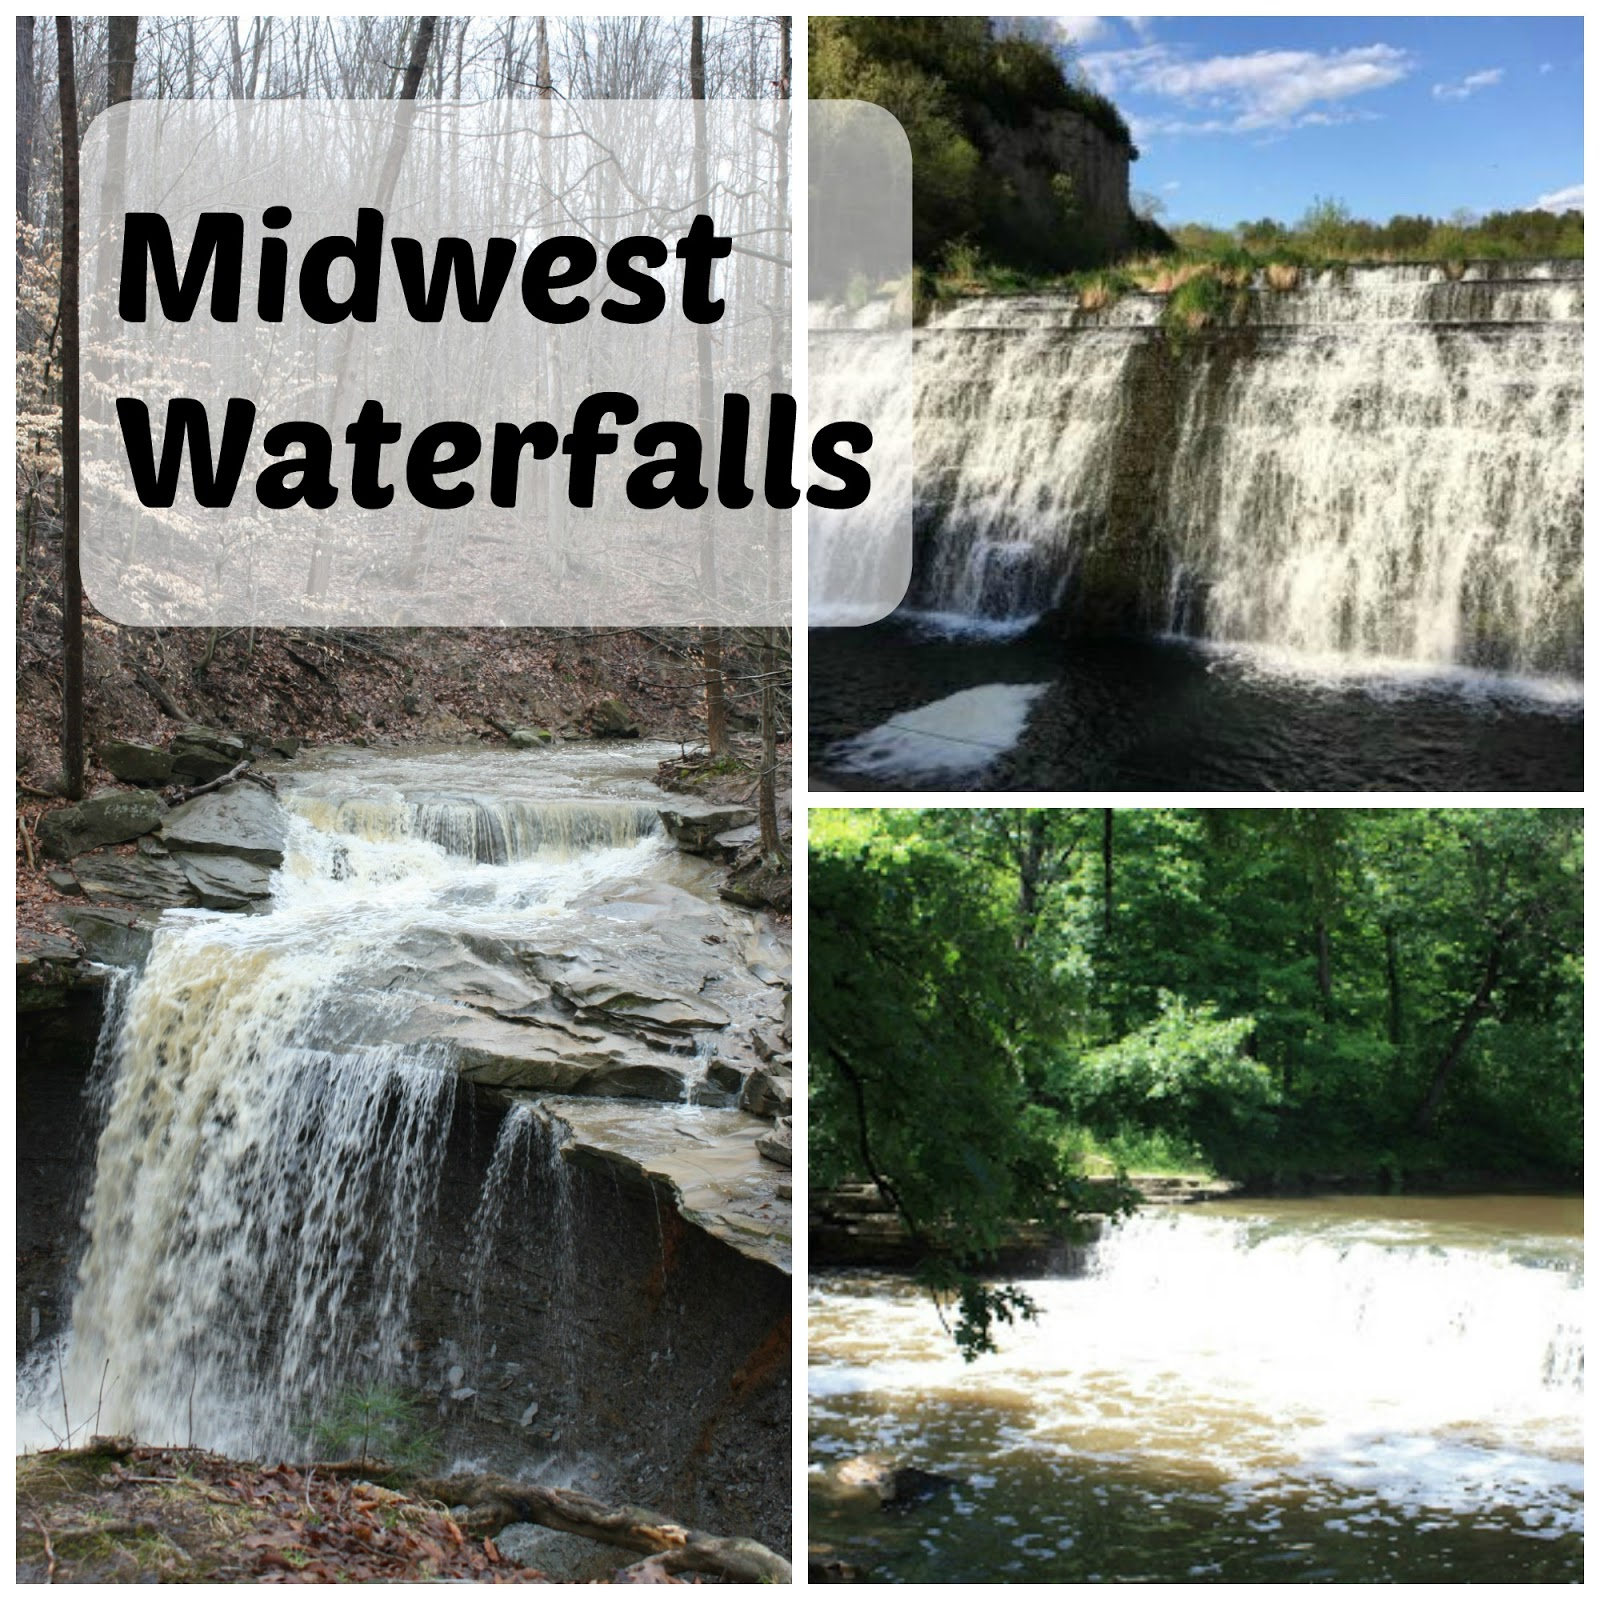 A Little Time and a Keyboard: Waterfalls of the Midwest